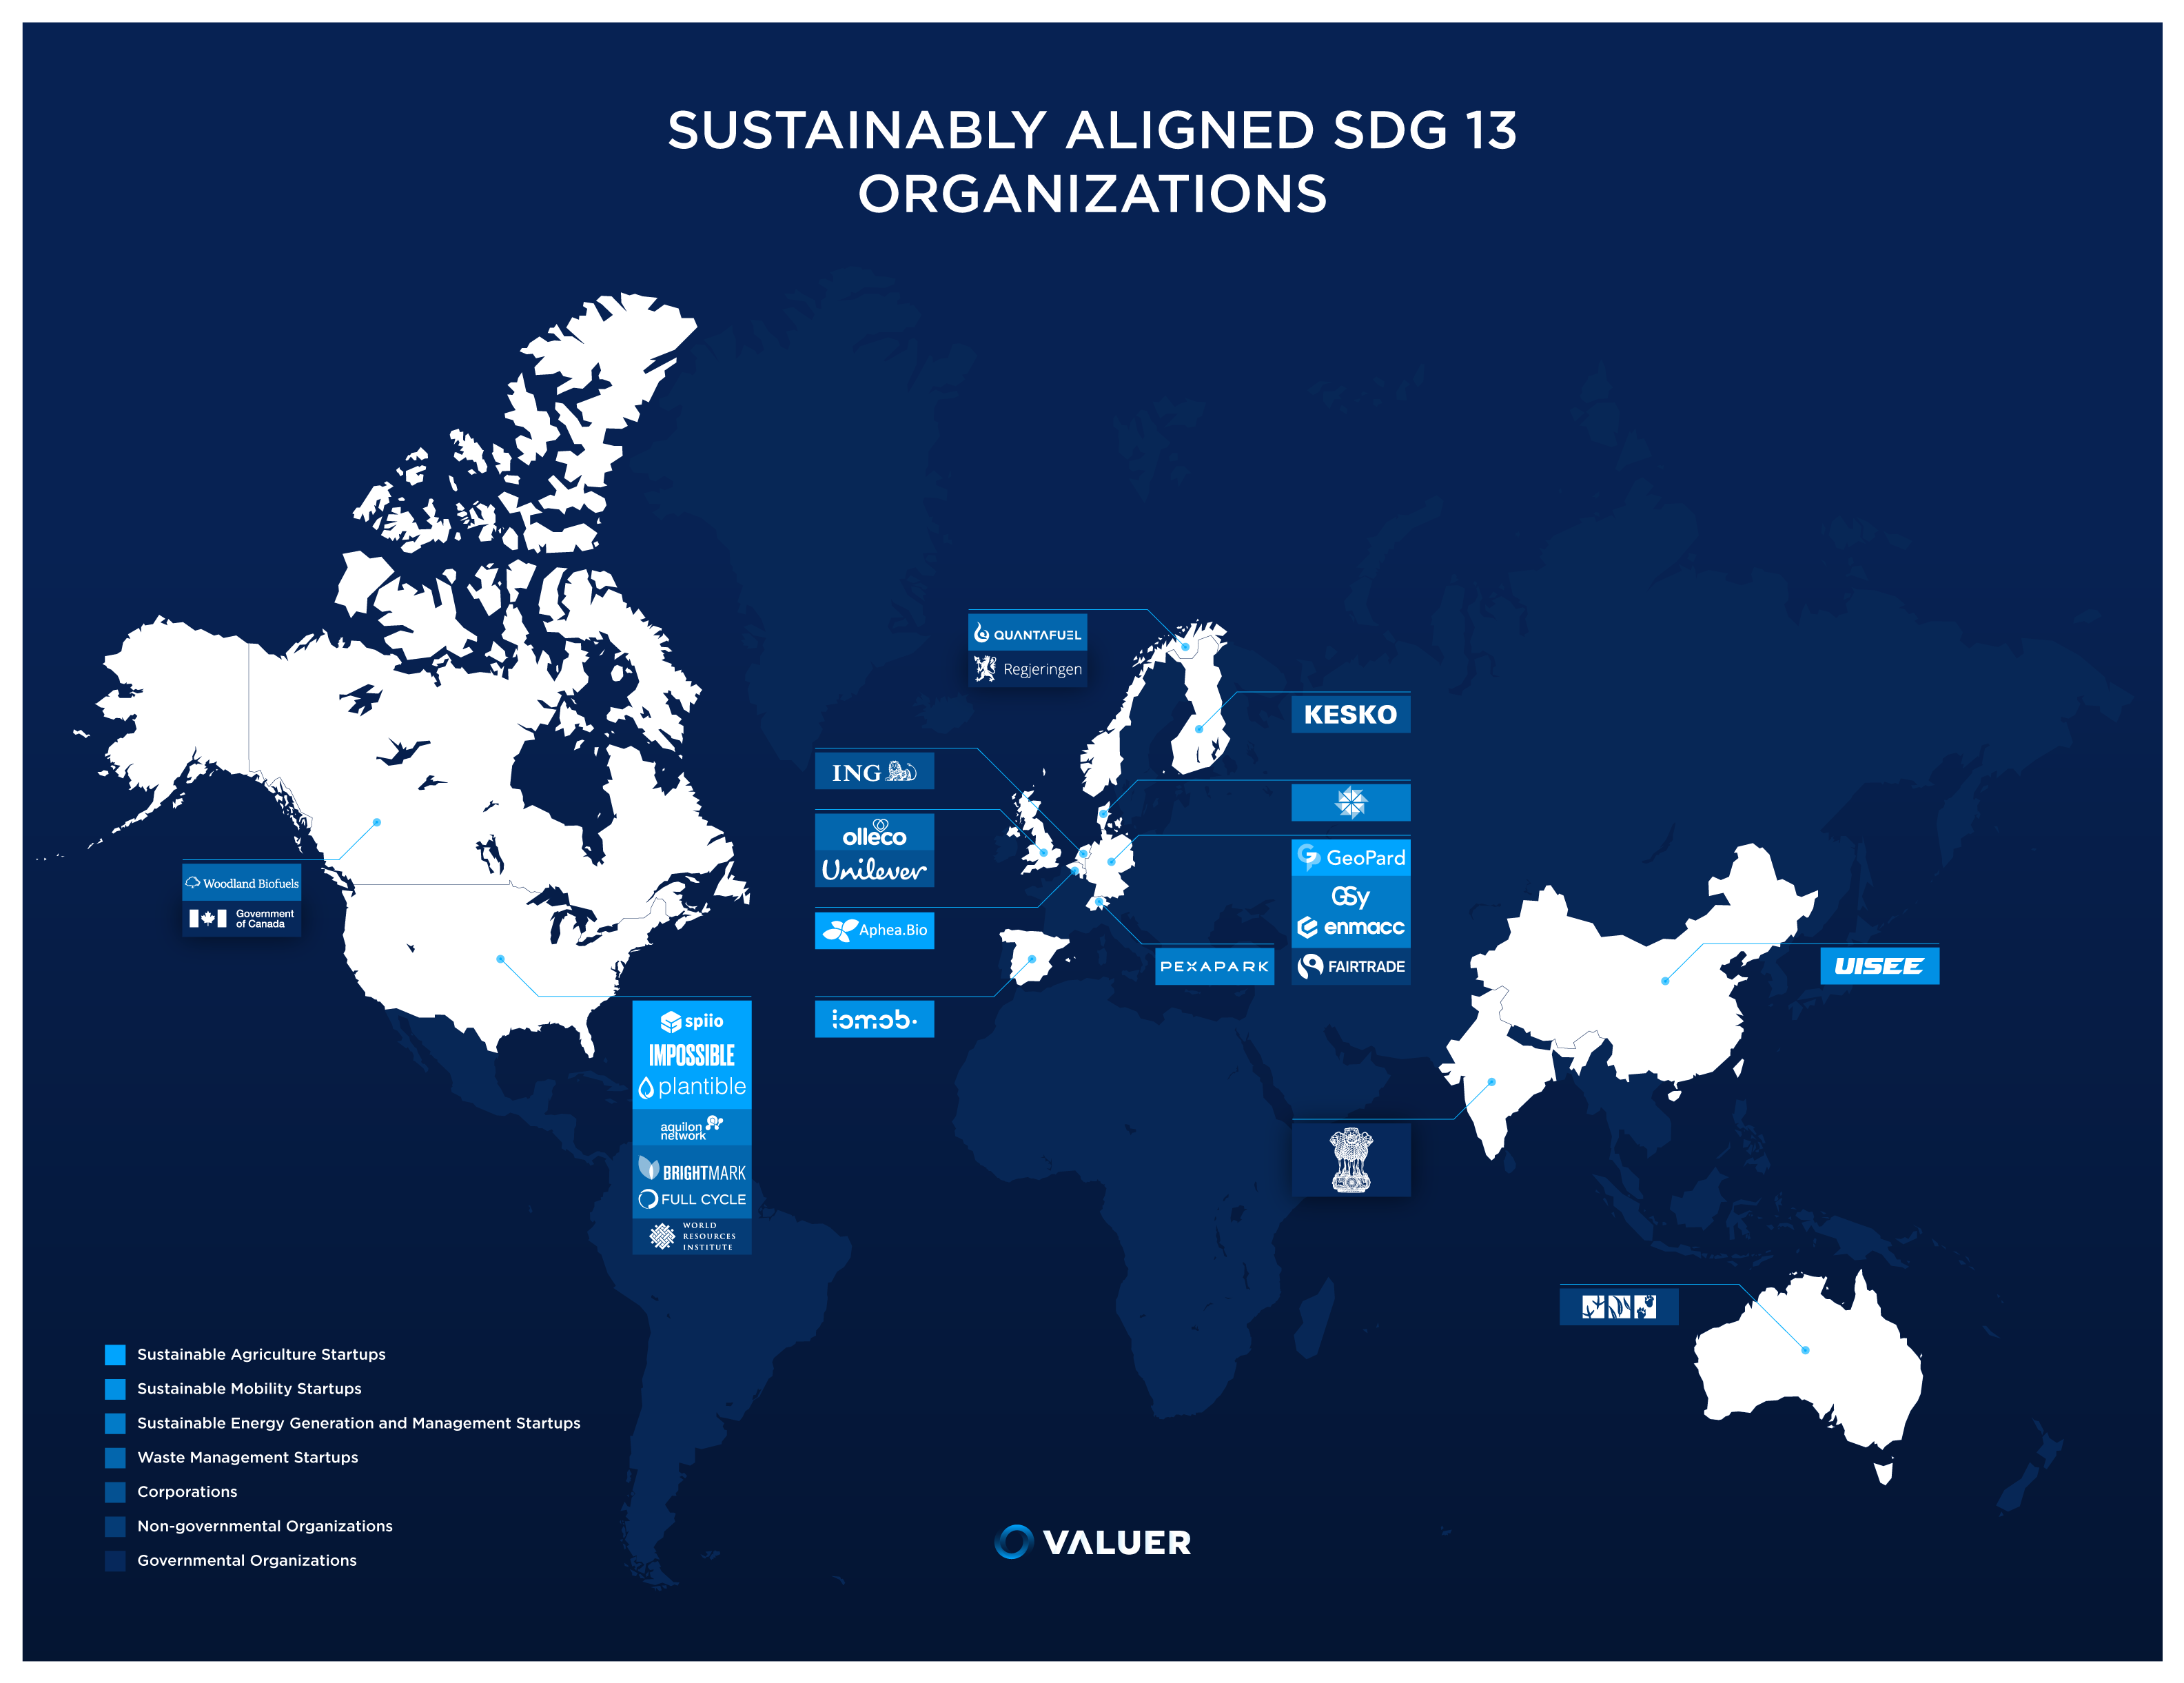 Sustainably Aligned SDG 13 Organizations Map